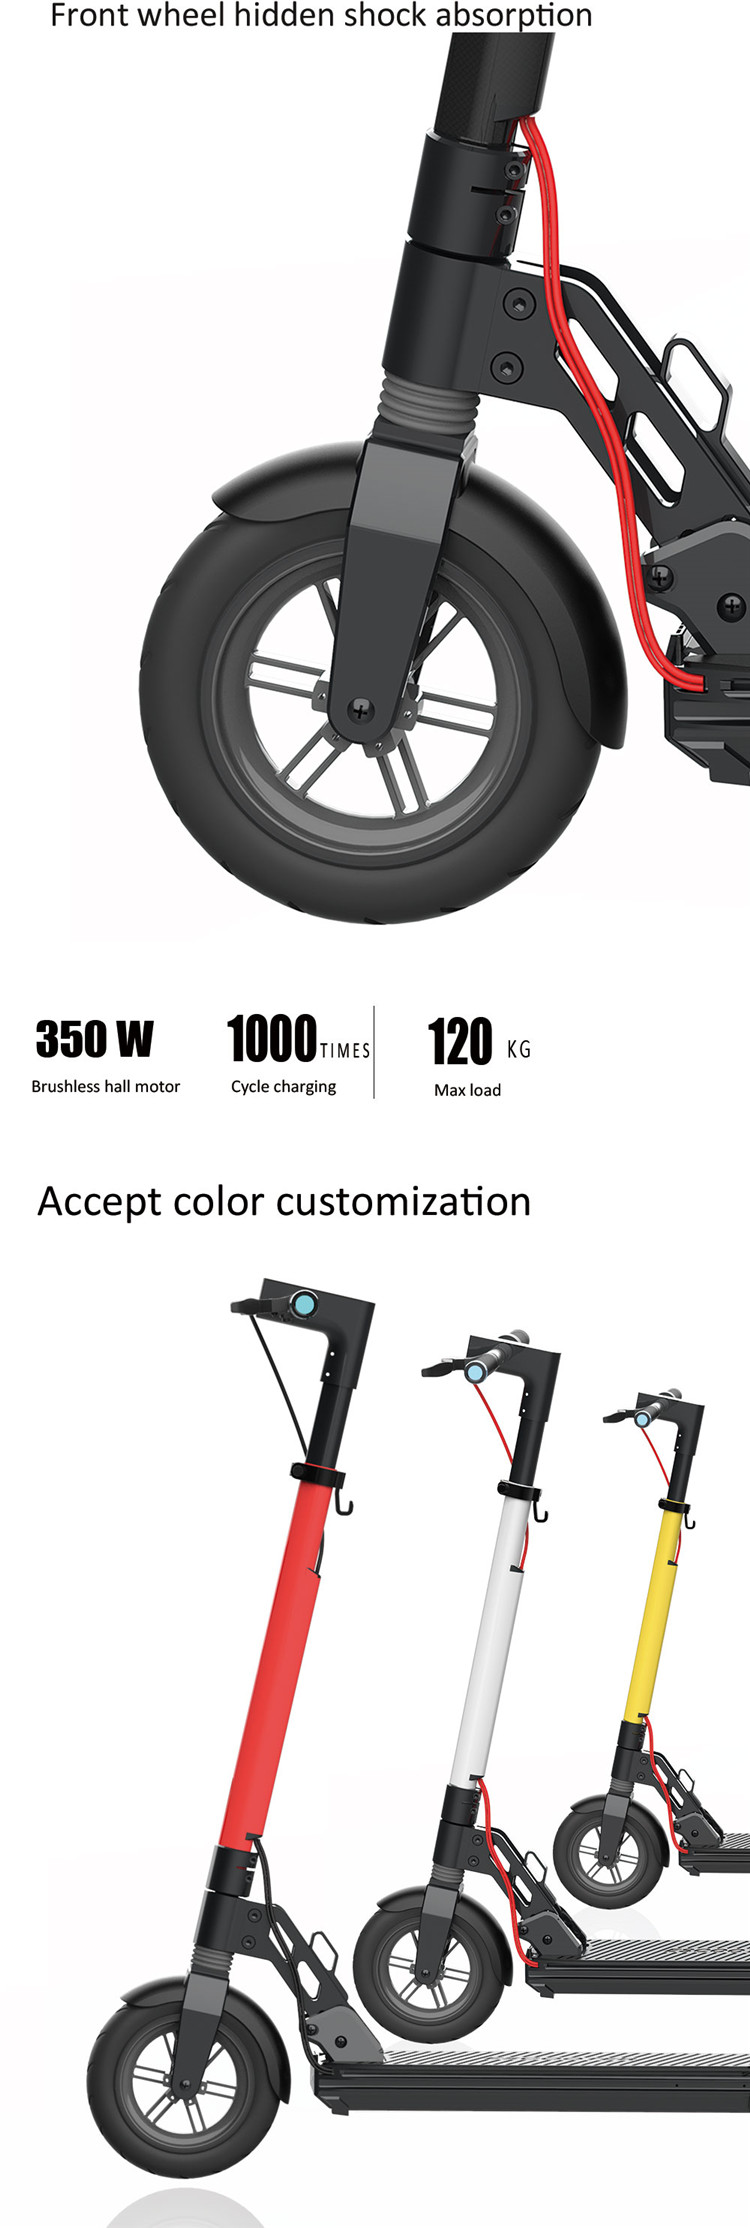 Hot Sale Original Design Kick E-scooter With GPS, 4G,8.5-inch  IOT Based Fitrider Folding Shared Electric Mobility Scooter